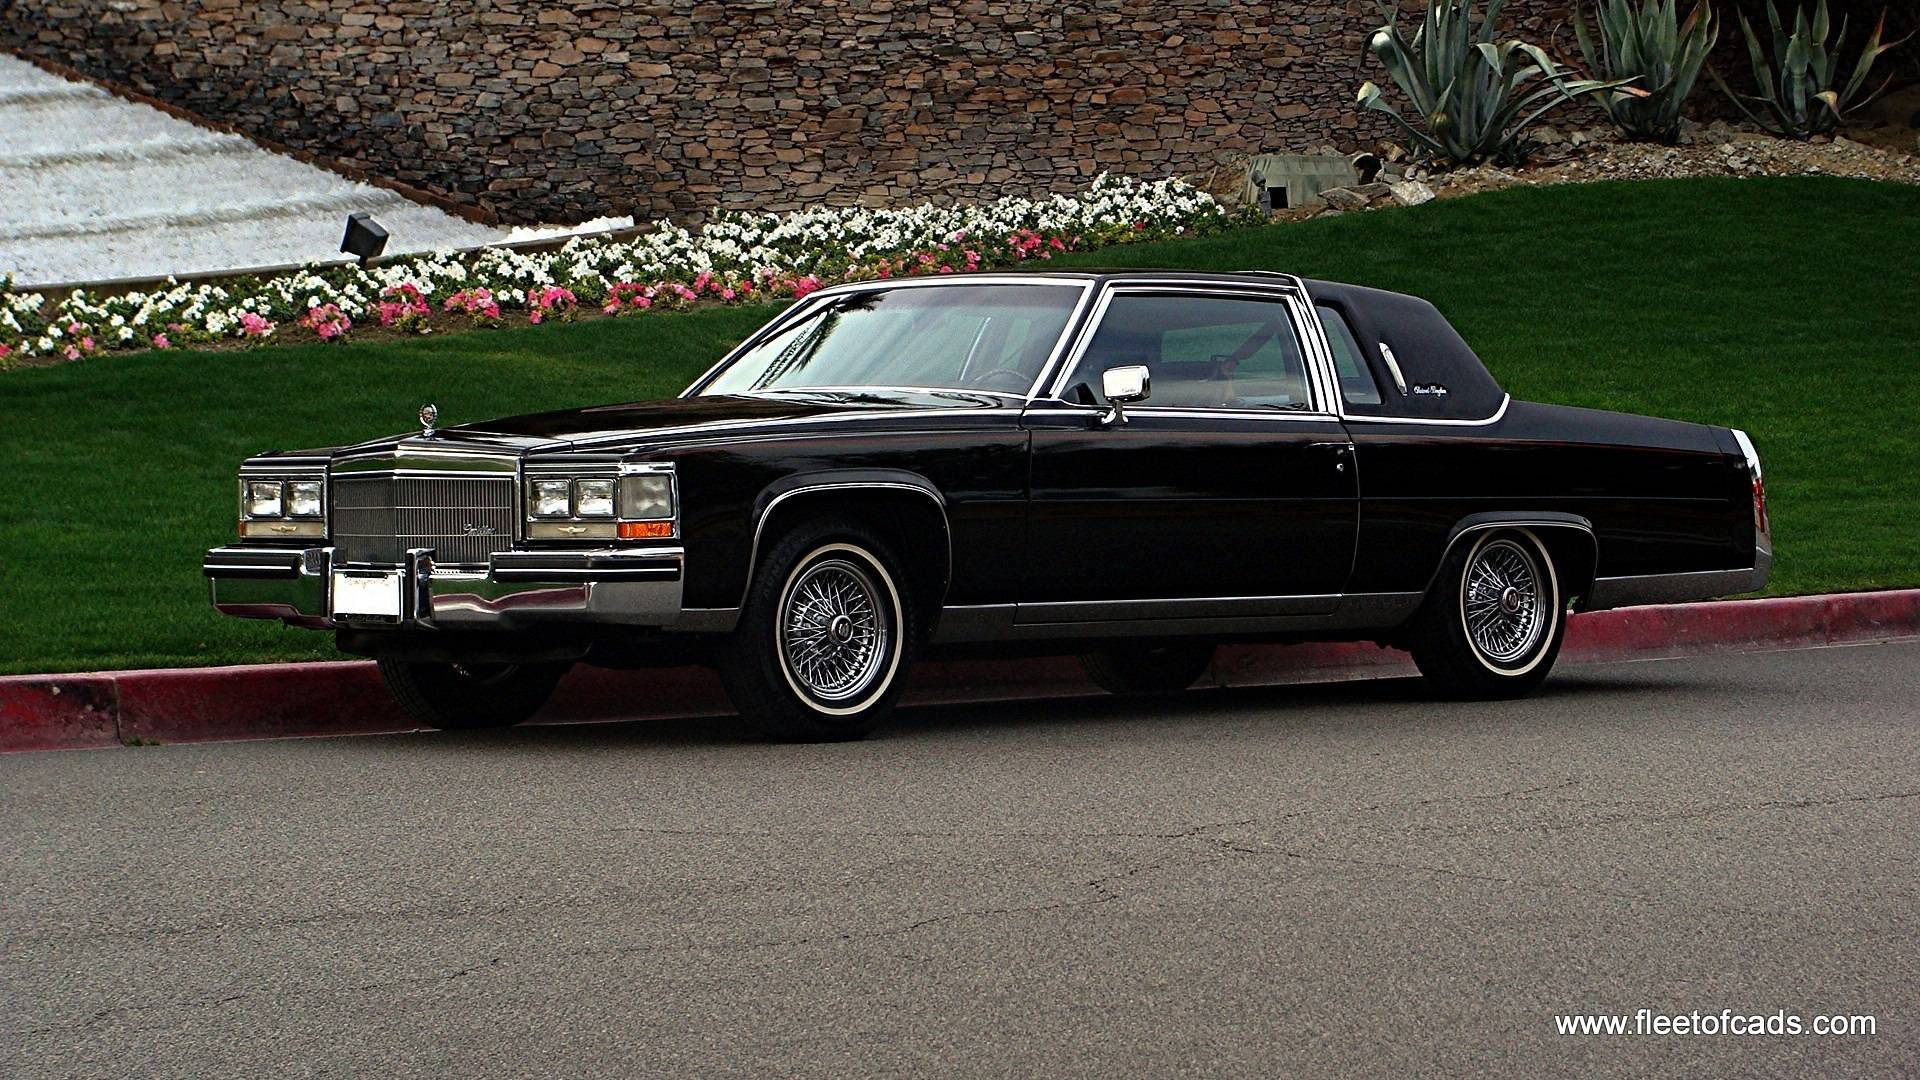 1984 Cadillac Fleetwood Brougham Coupe (39k miles)